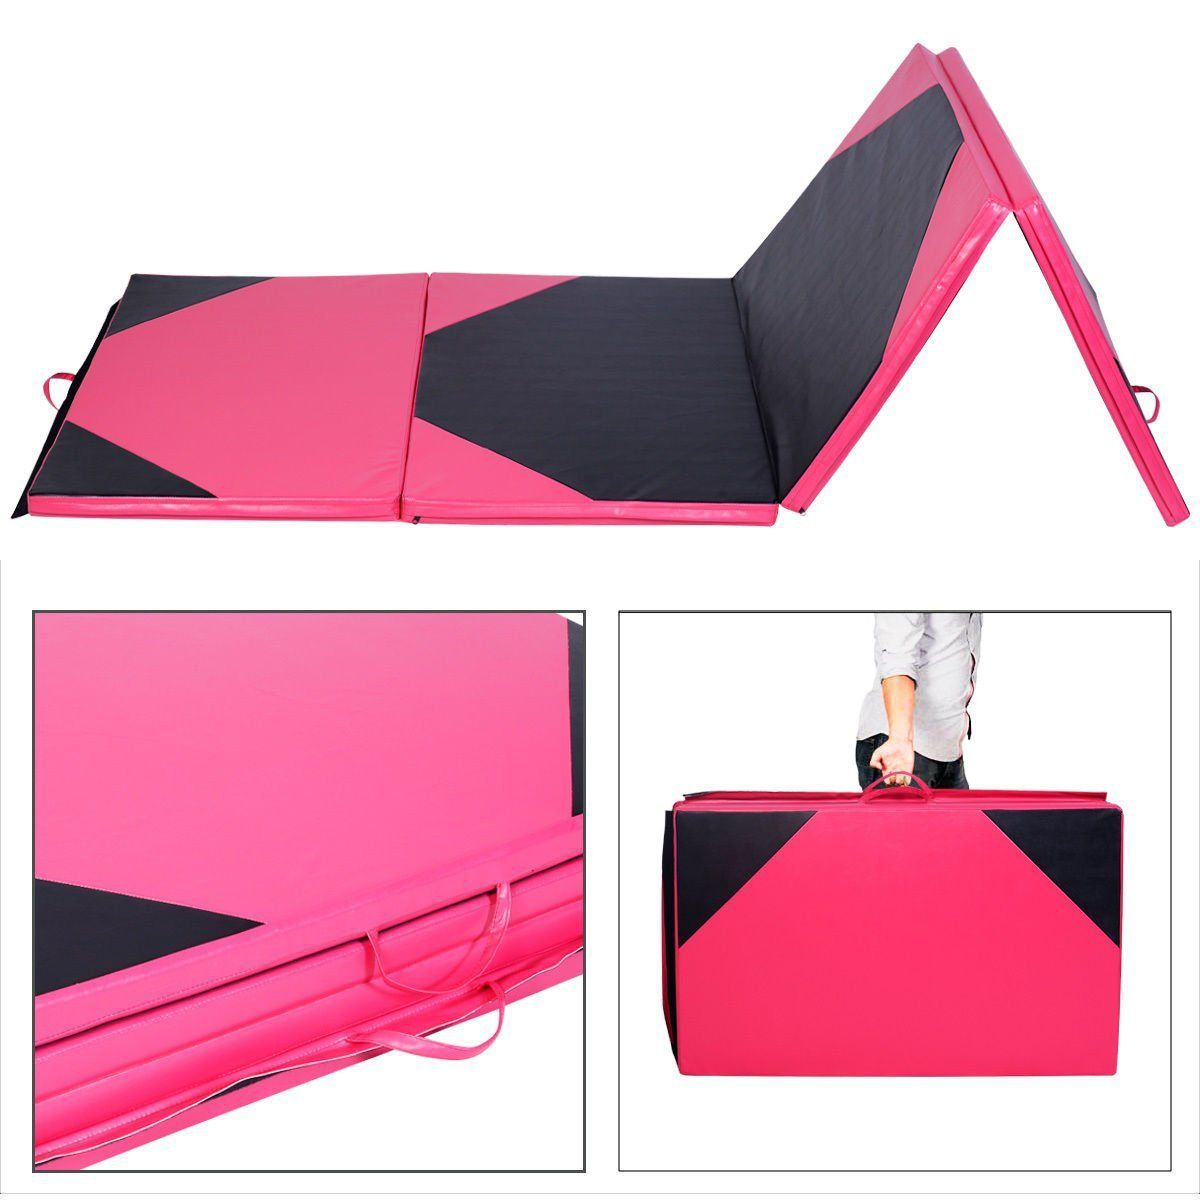 Yoga Mats 4 X10 X2 Thick Folding Panel Gymnastics Mat Gym